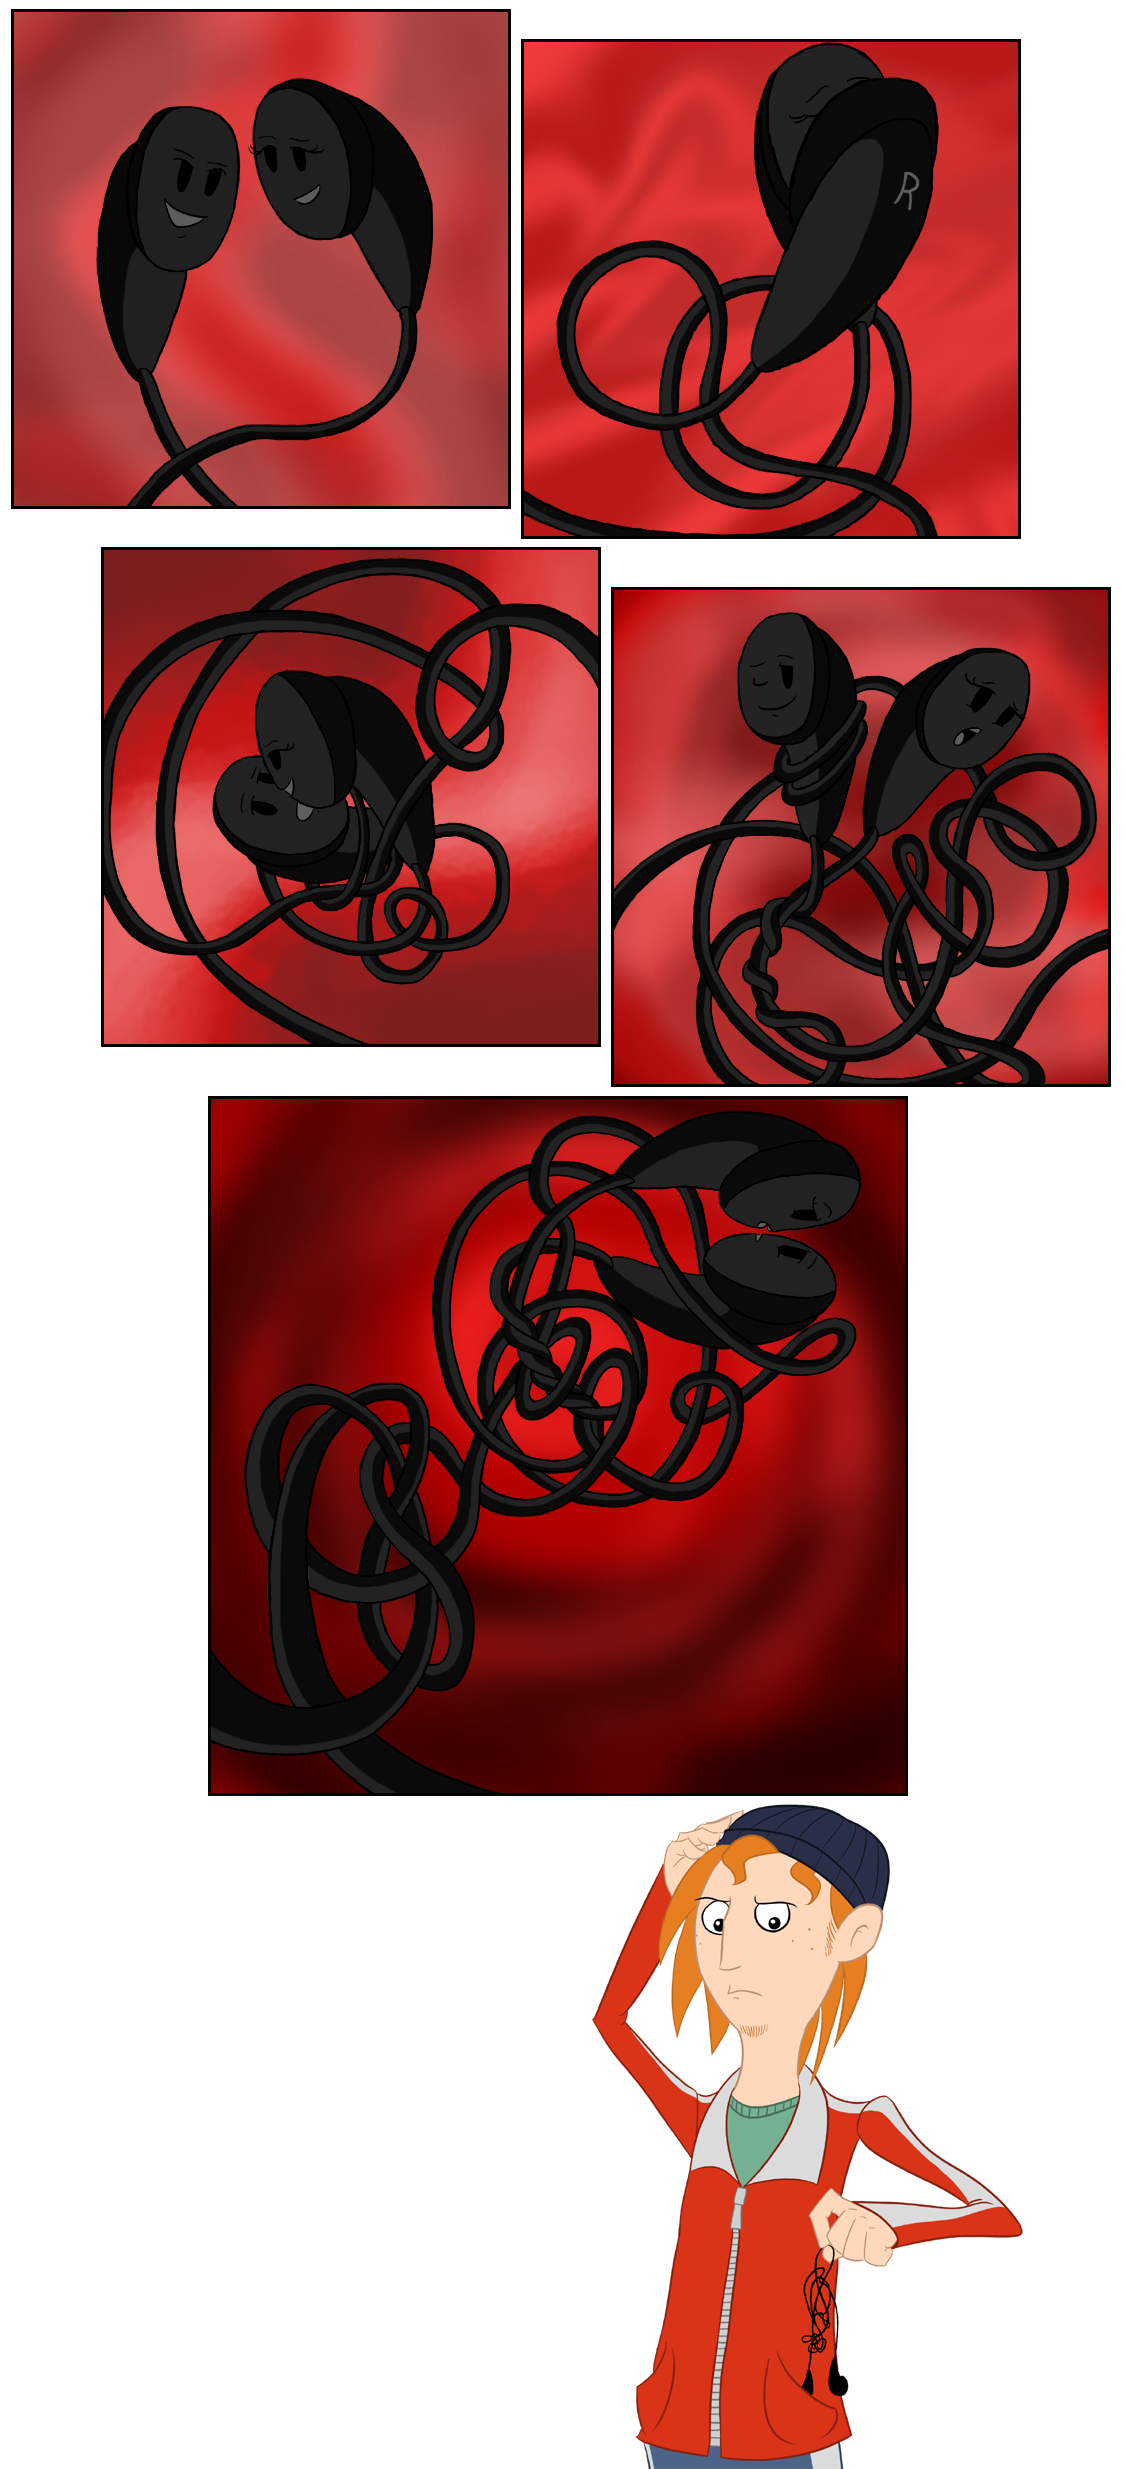 The thing with earphones.